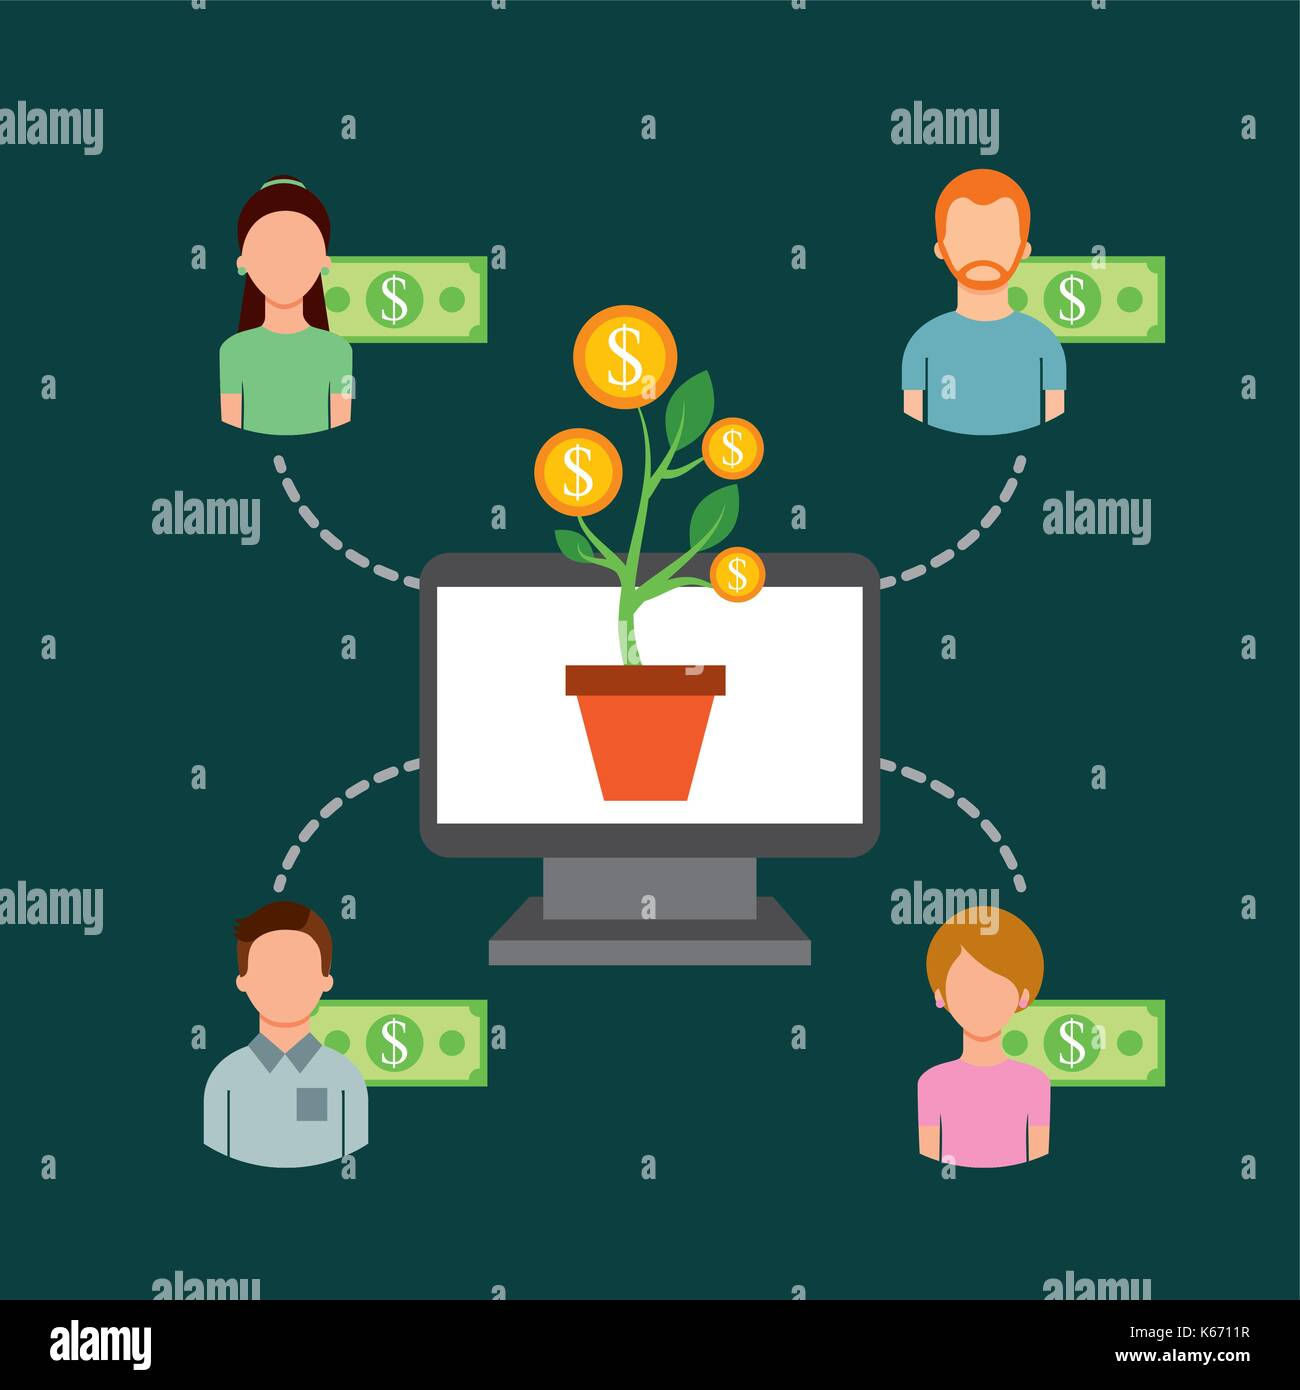 computer plant money community people funding collaboration - Stock Image